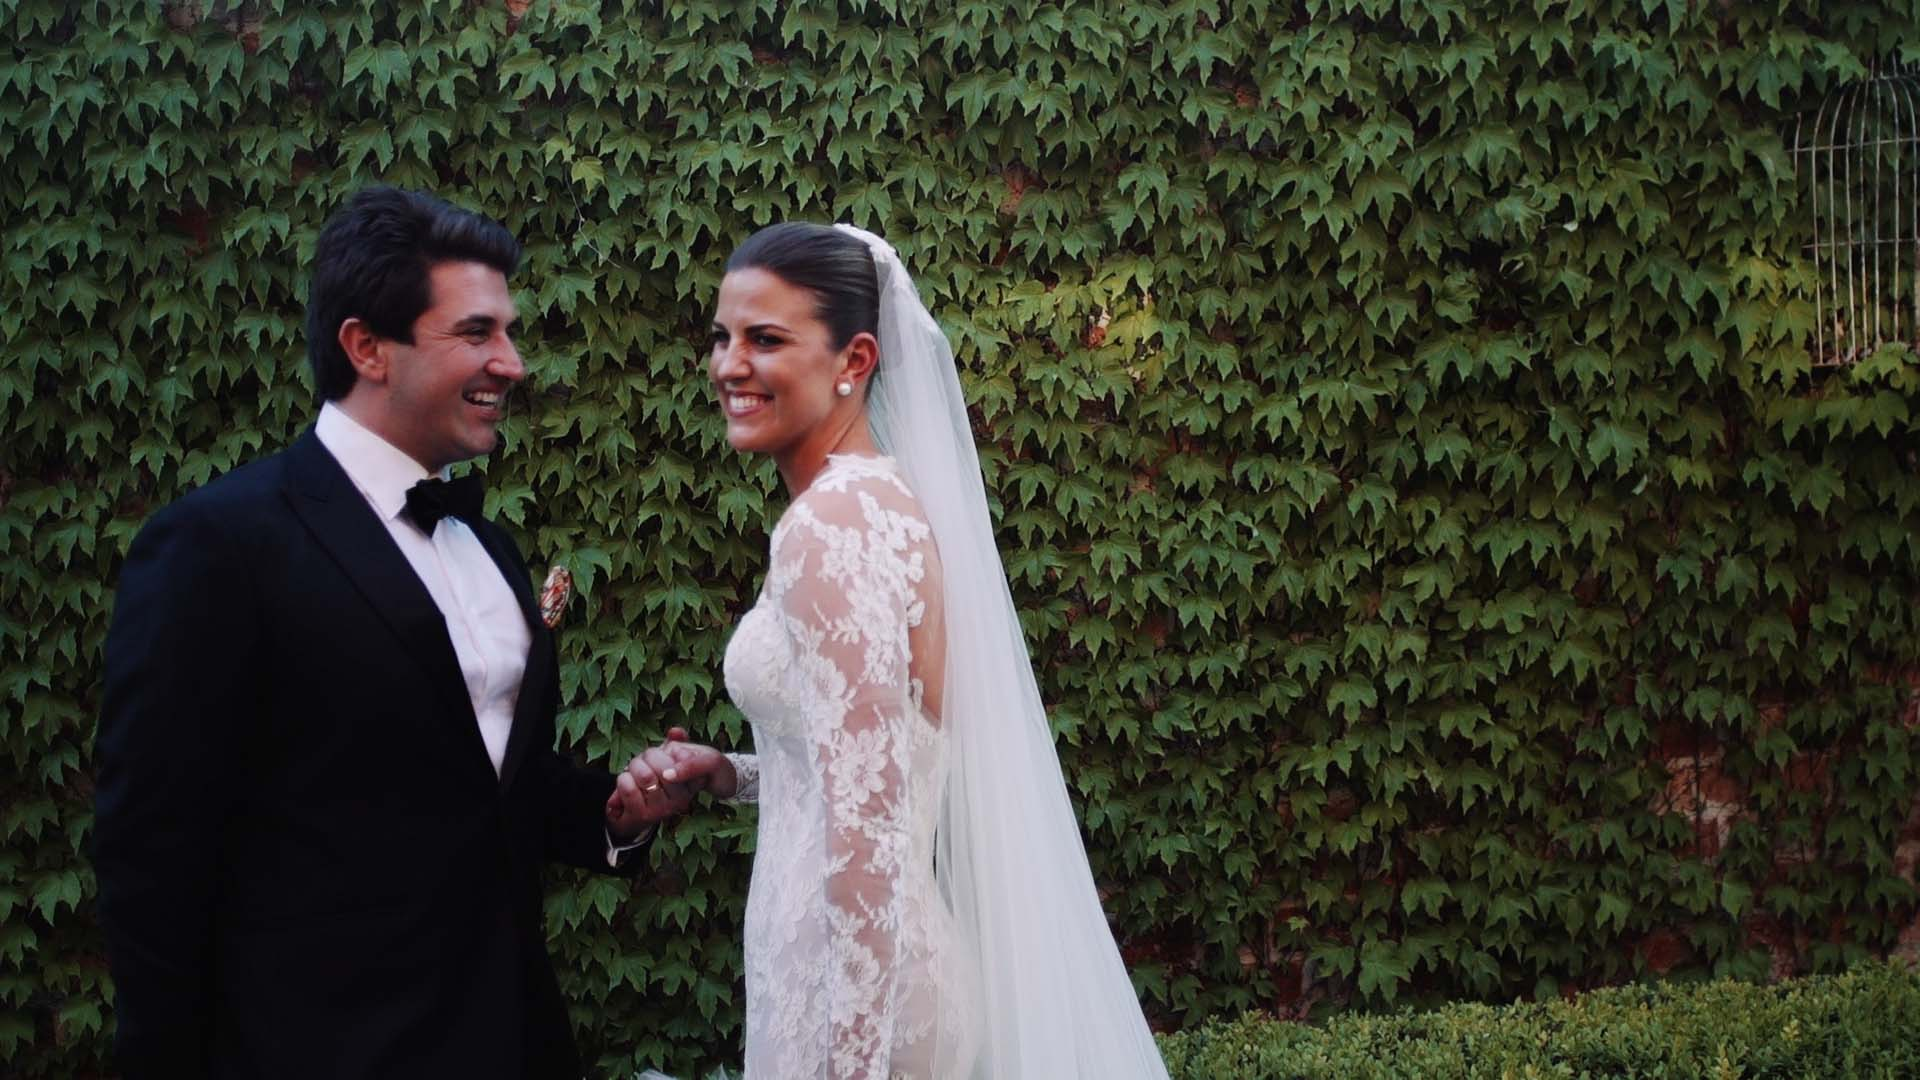 angus and clair wedding videography melbourne